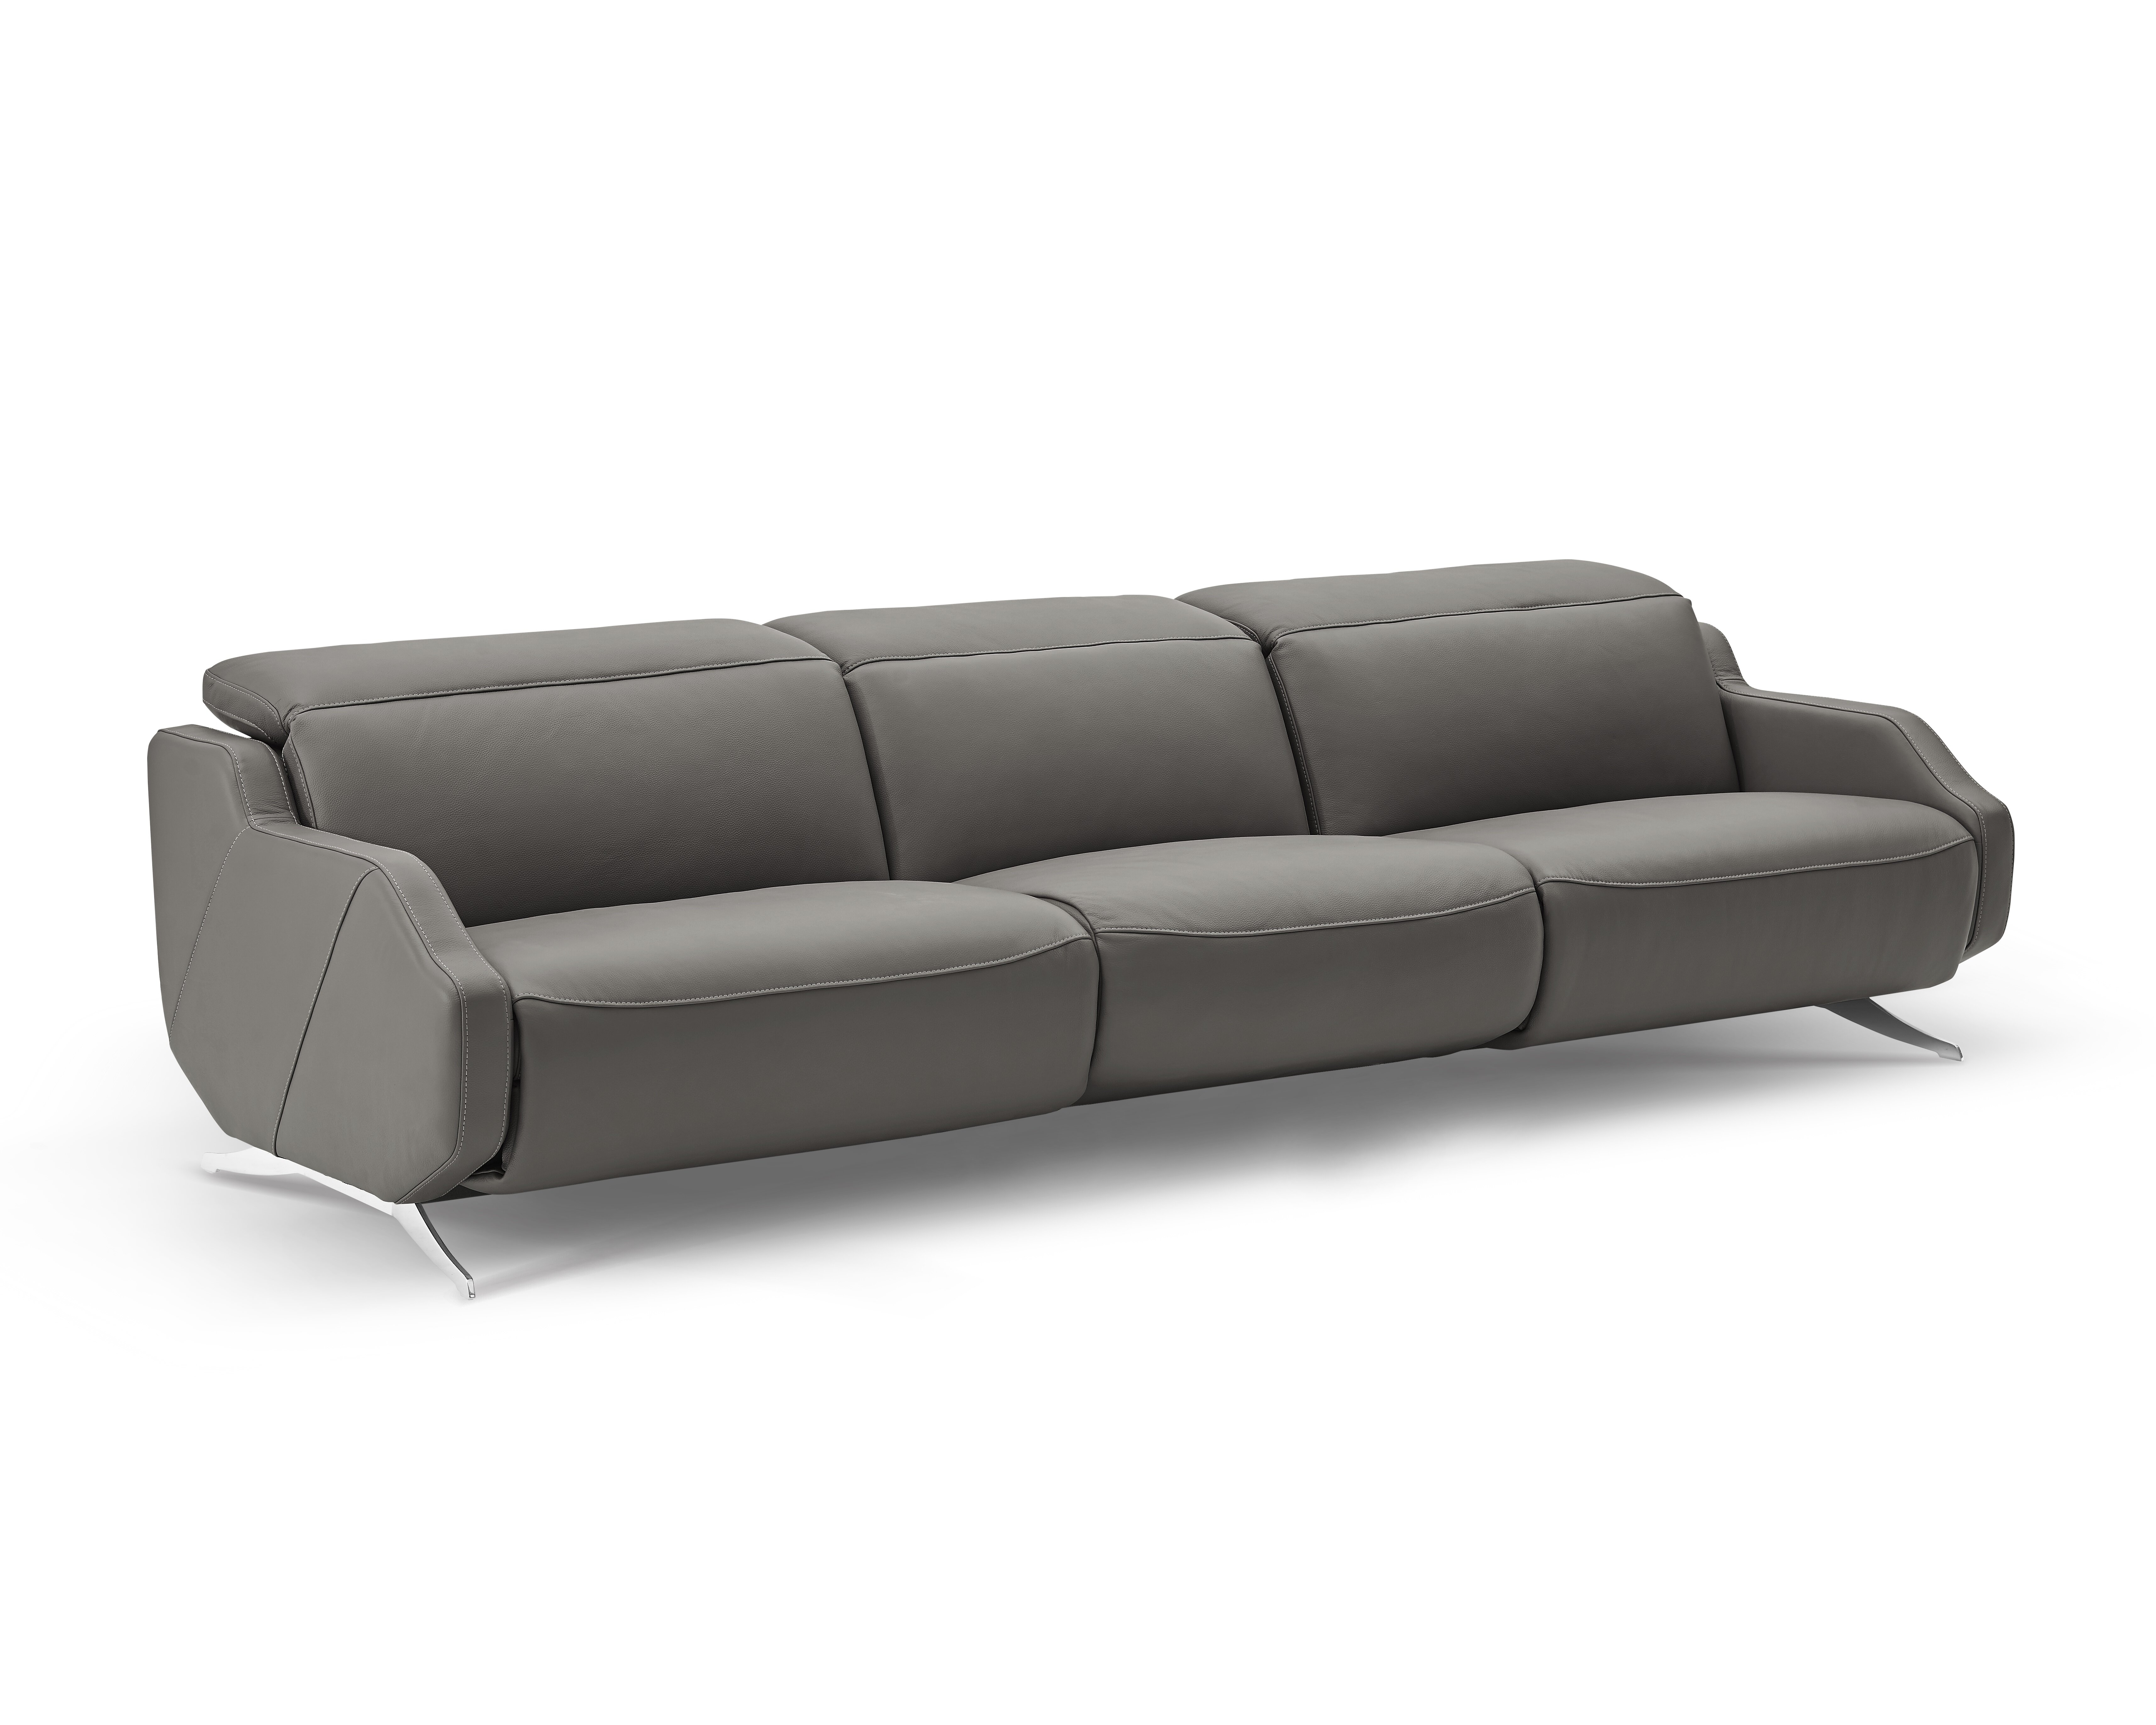 Berlinville Leather Reclining Sofa